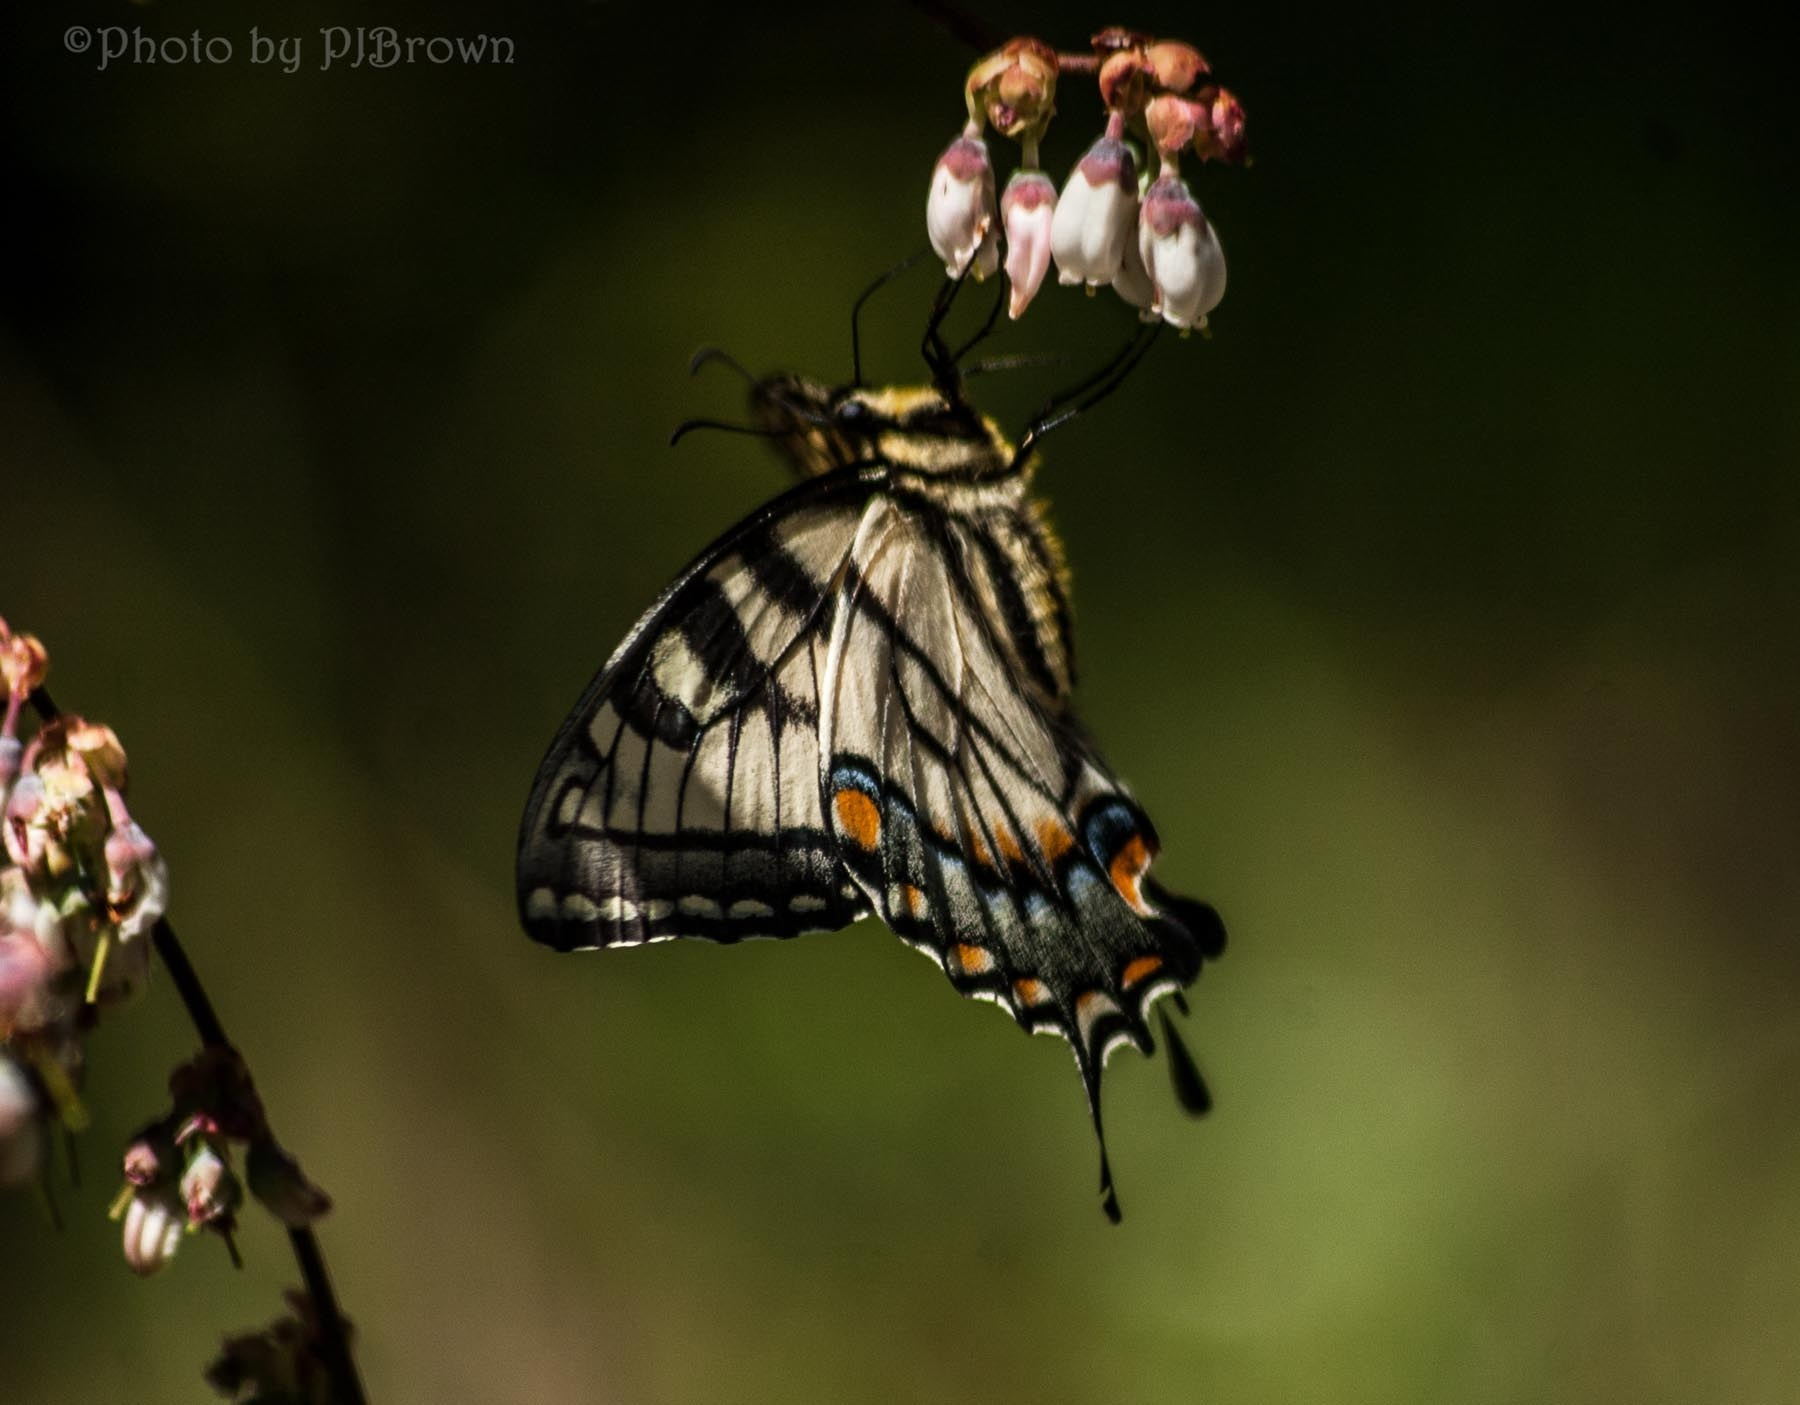 Agility and Grace! A Tiger Swallowtail on Blueberry blossoms! by revpaulvet